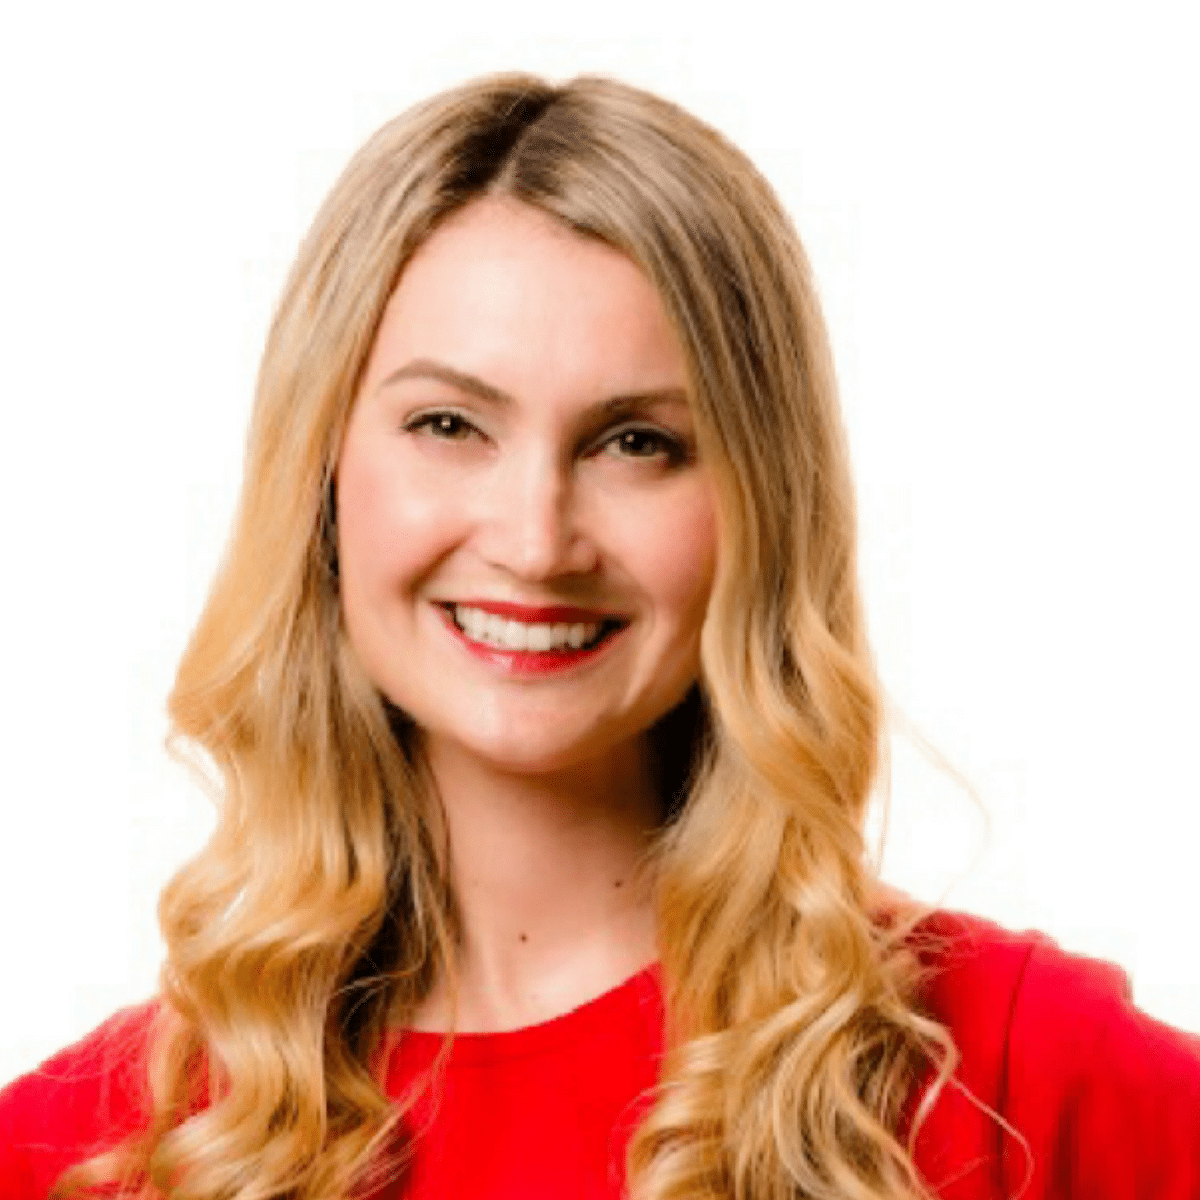 Sarah Gulbrandson small business marketing ideas - tips from the pros